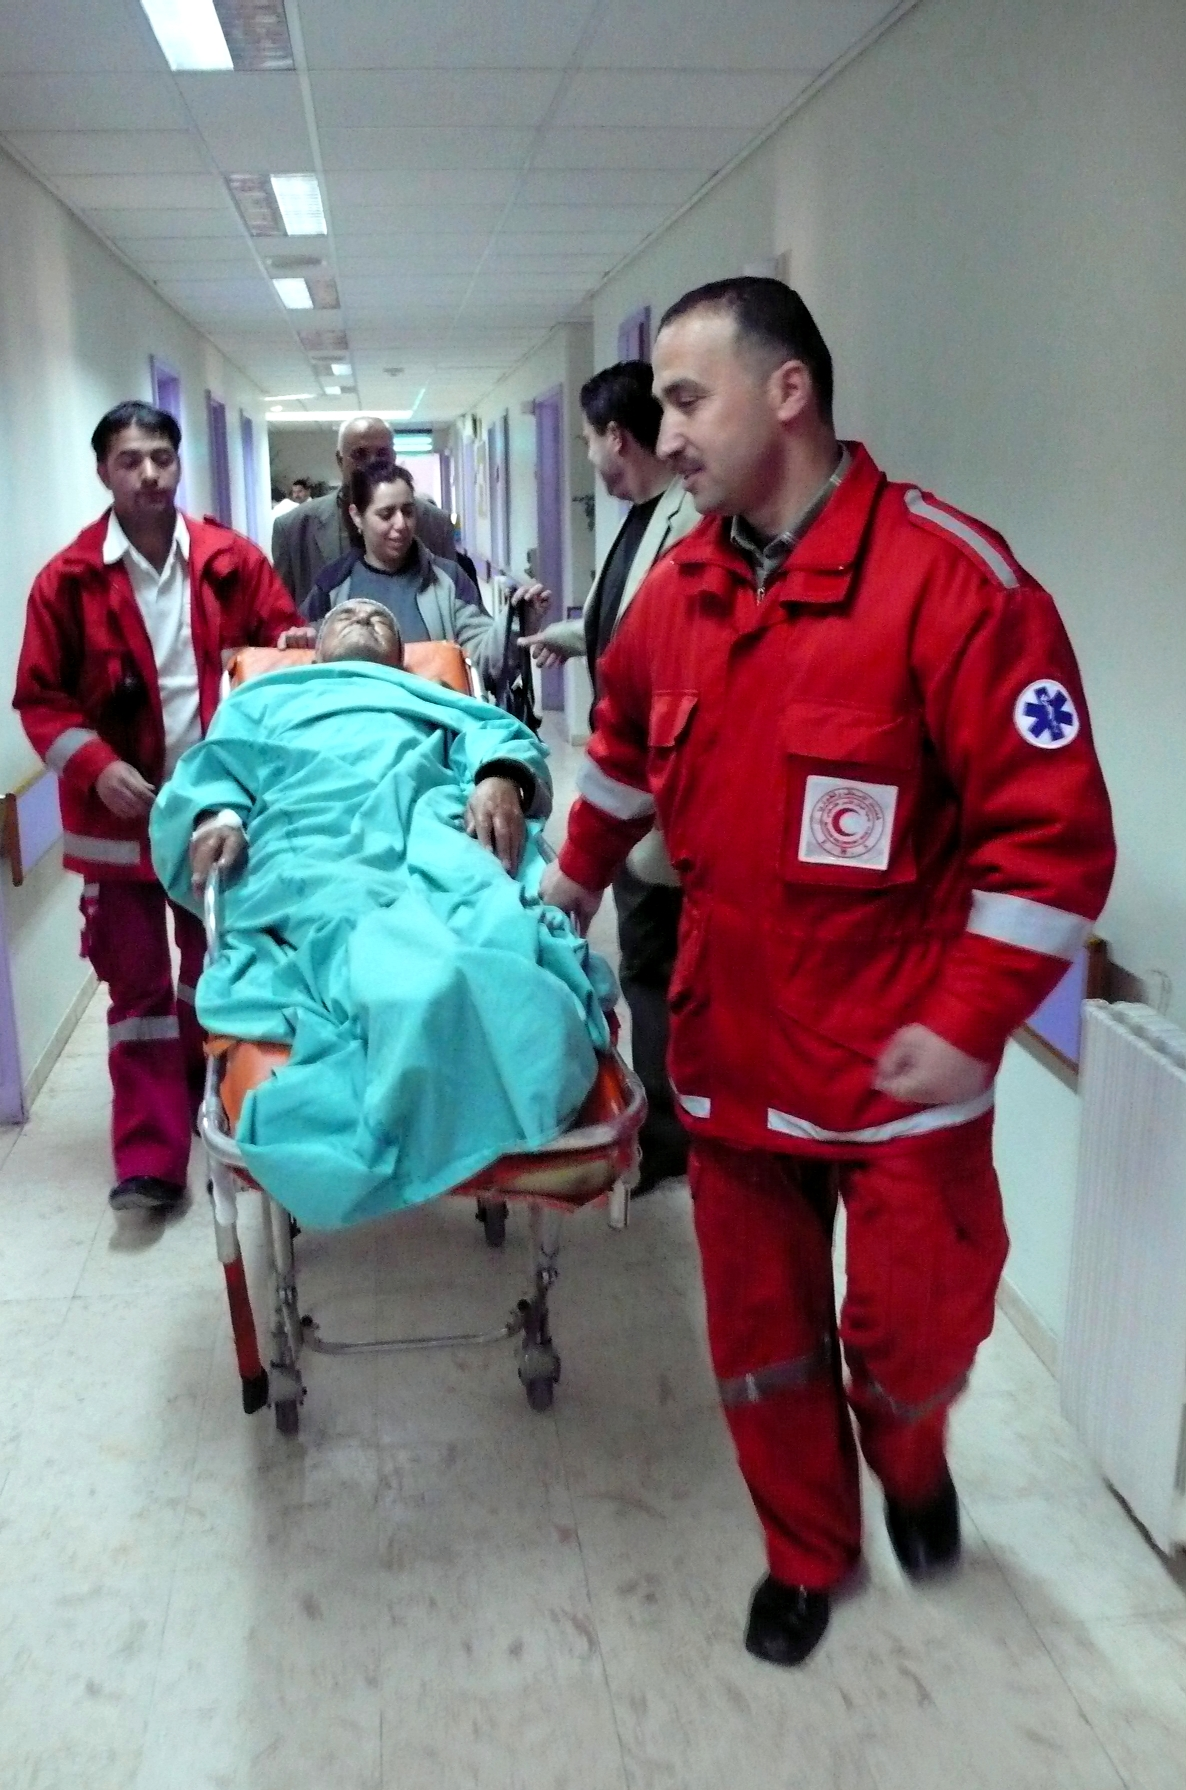 A patient is transferred by a Palestine Red Crescent team. The ICRC says that during conflict the main focus is keeping beds open for incoming trauma cases.